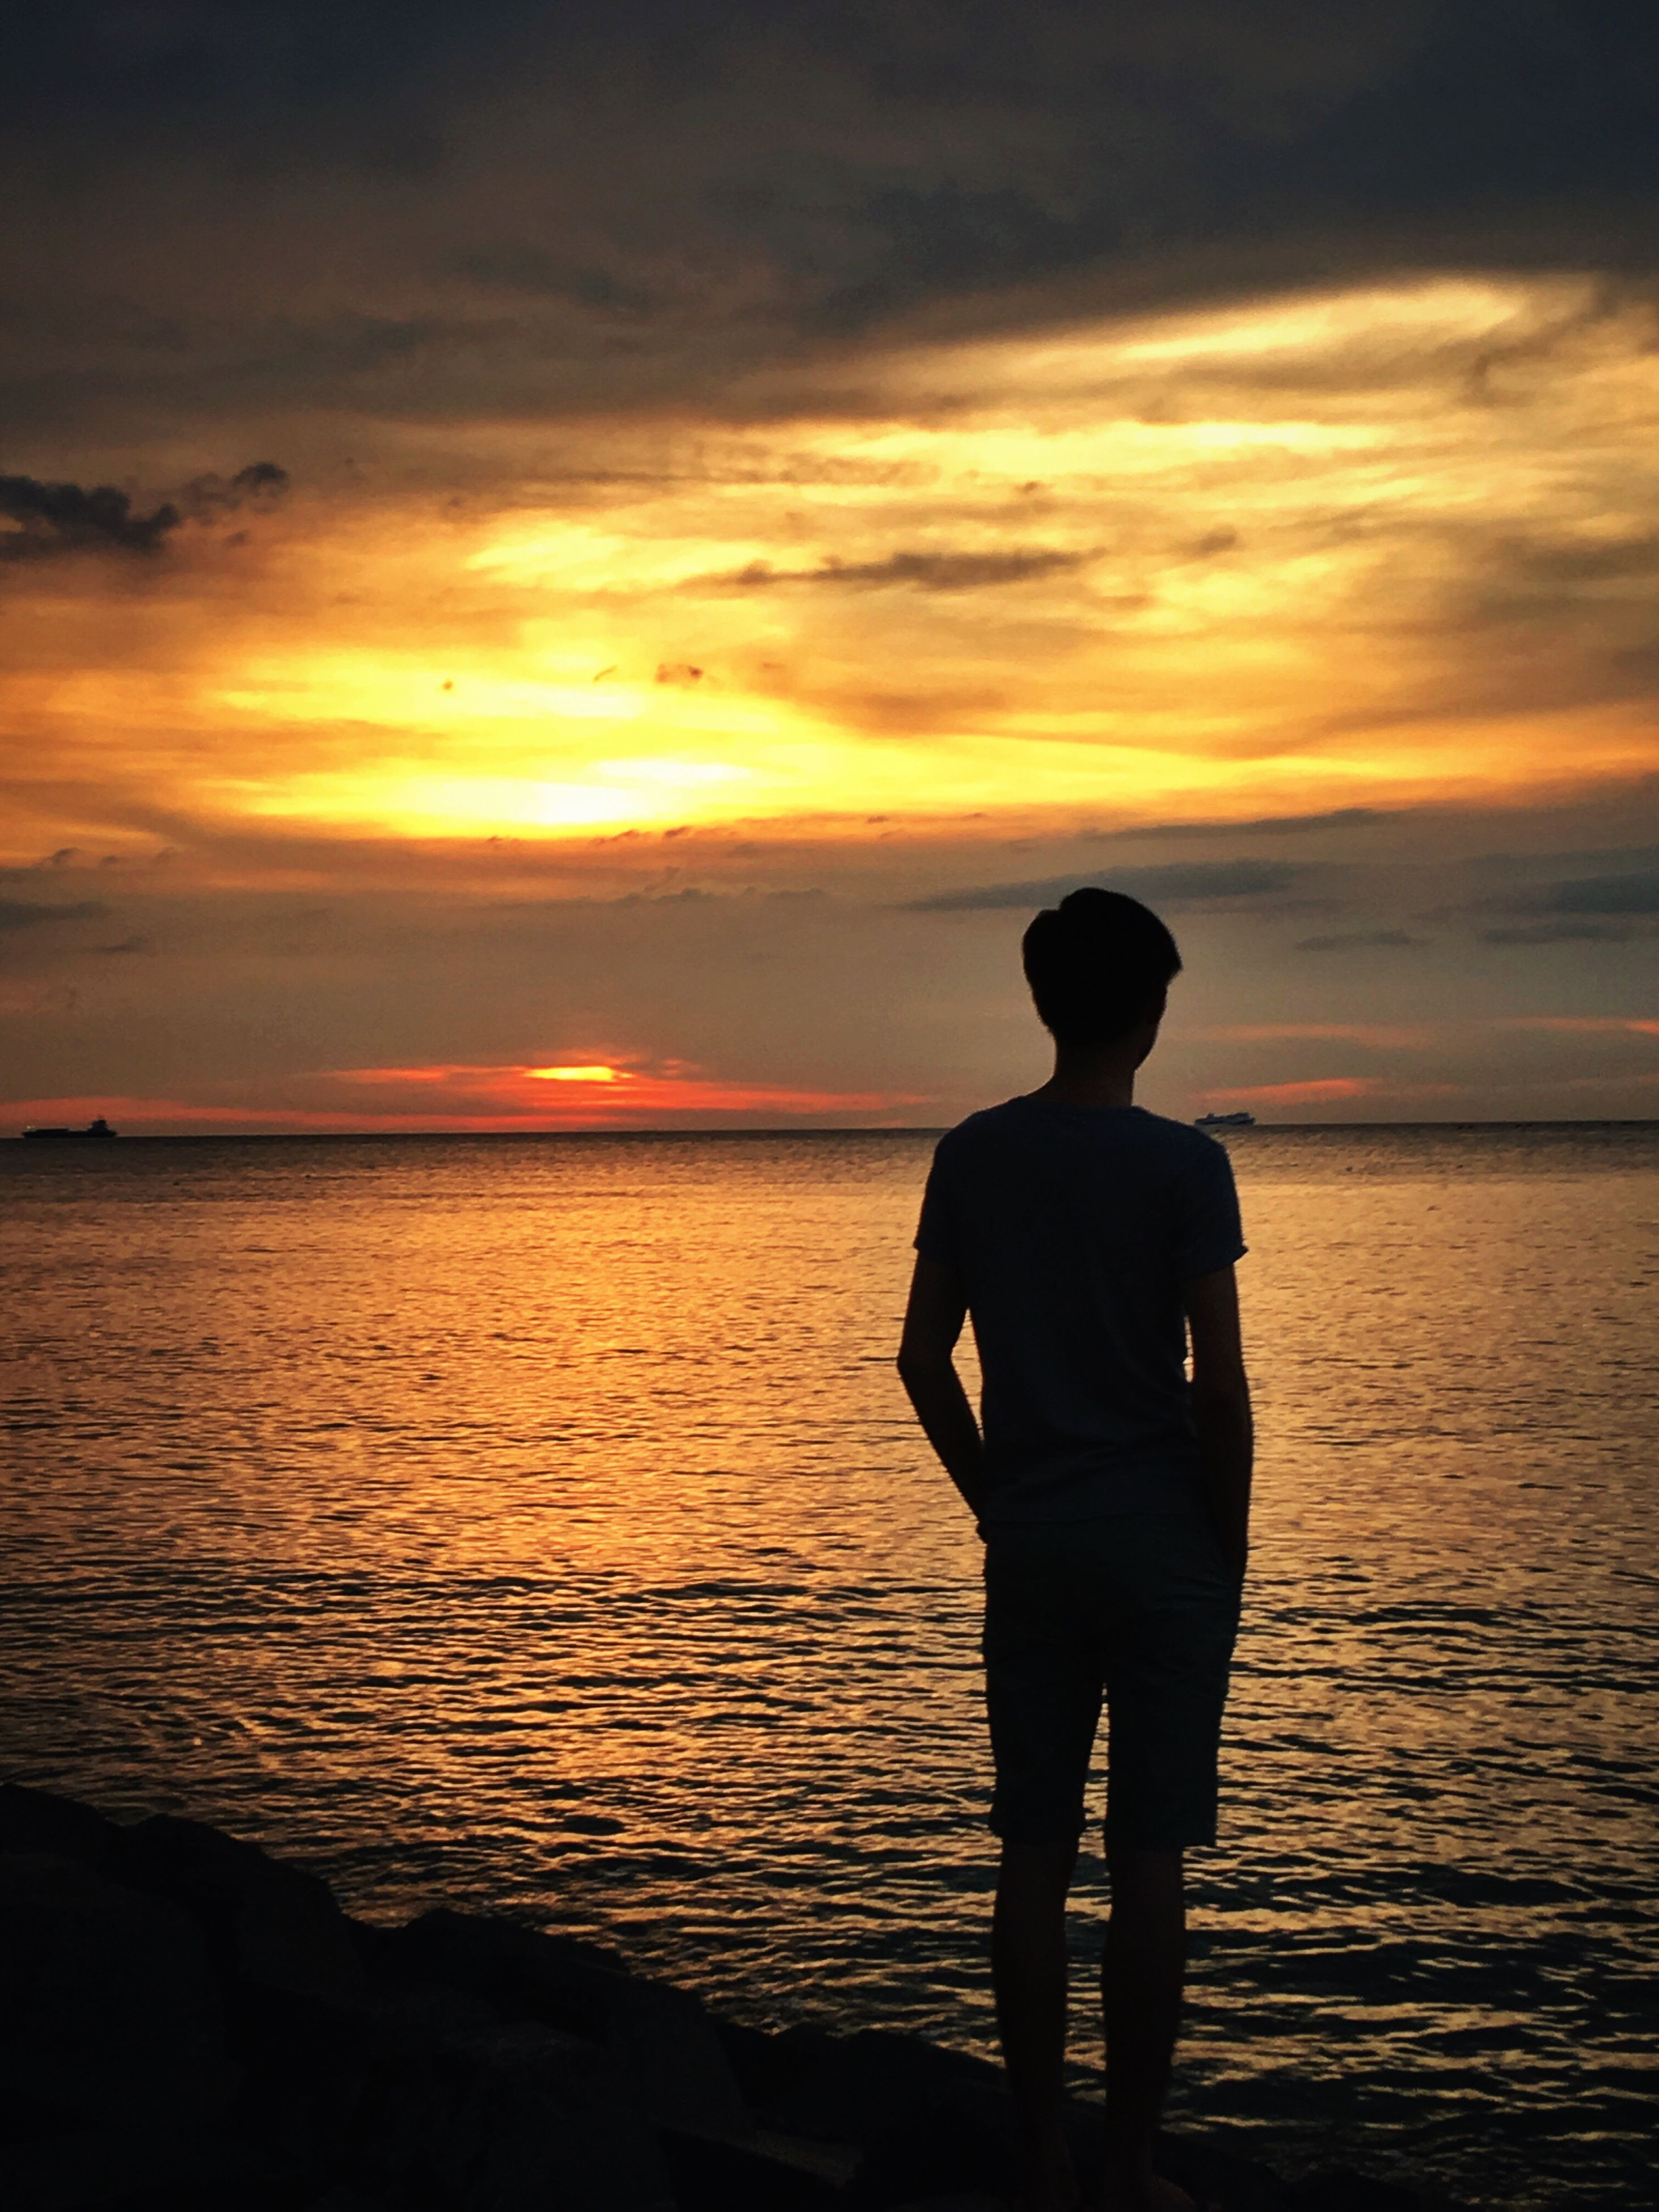 sunset, sea, horizon over water, sky, water, scenics, standing, lifestyles, beauty in nature, silhouette, leisure activity, tranquil scene, orange color, tranquility, cloud - sky, rear view, beach, idyllic